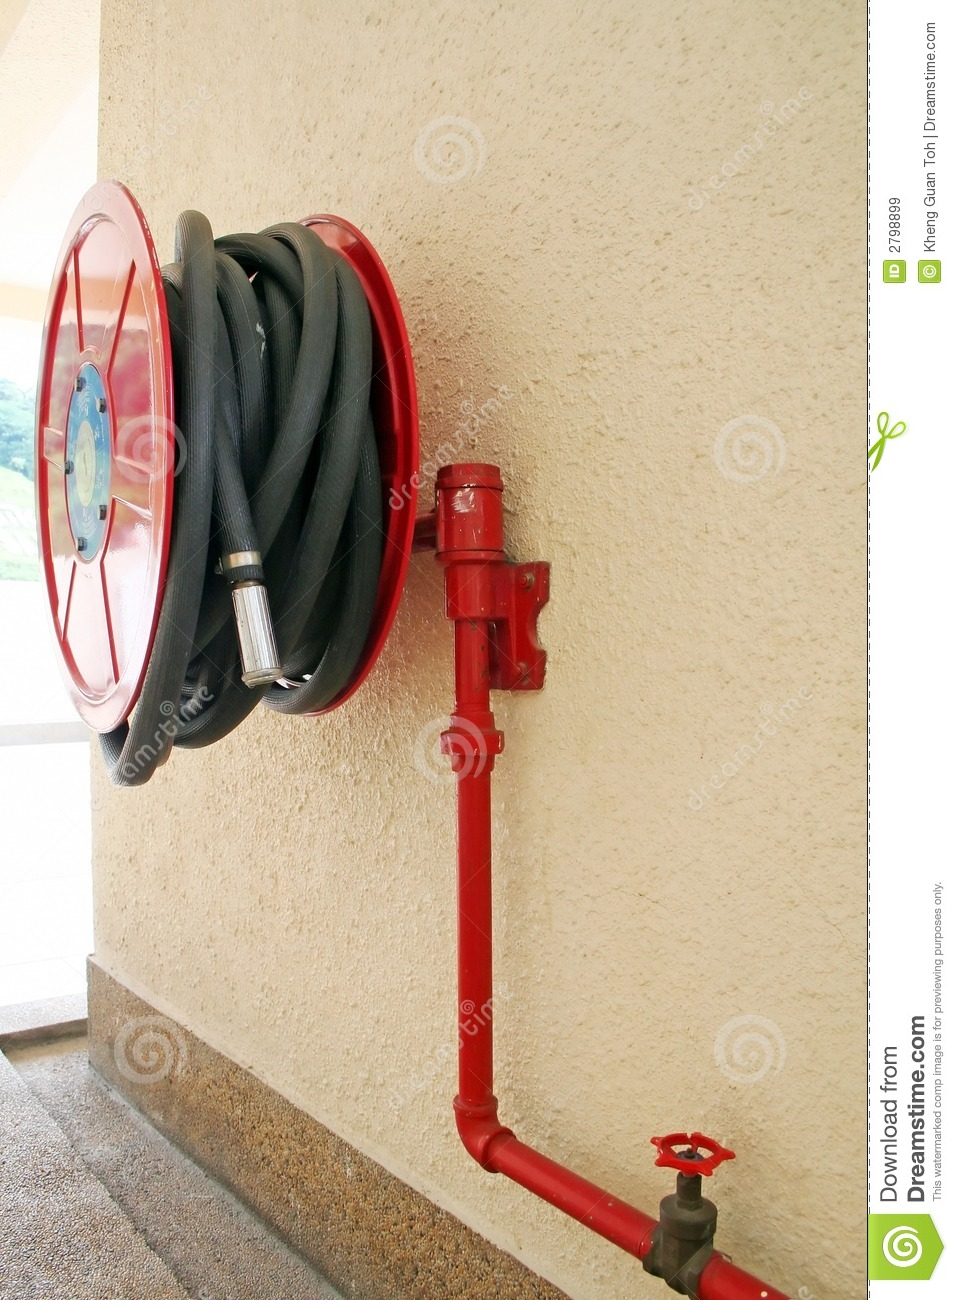 Firehose rouge